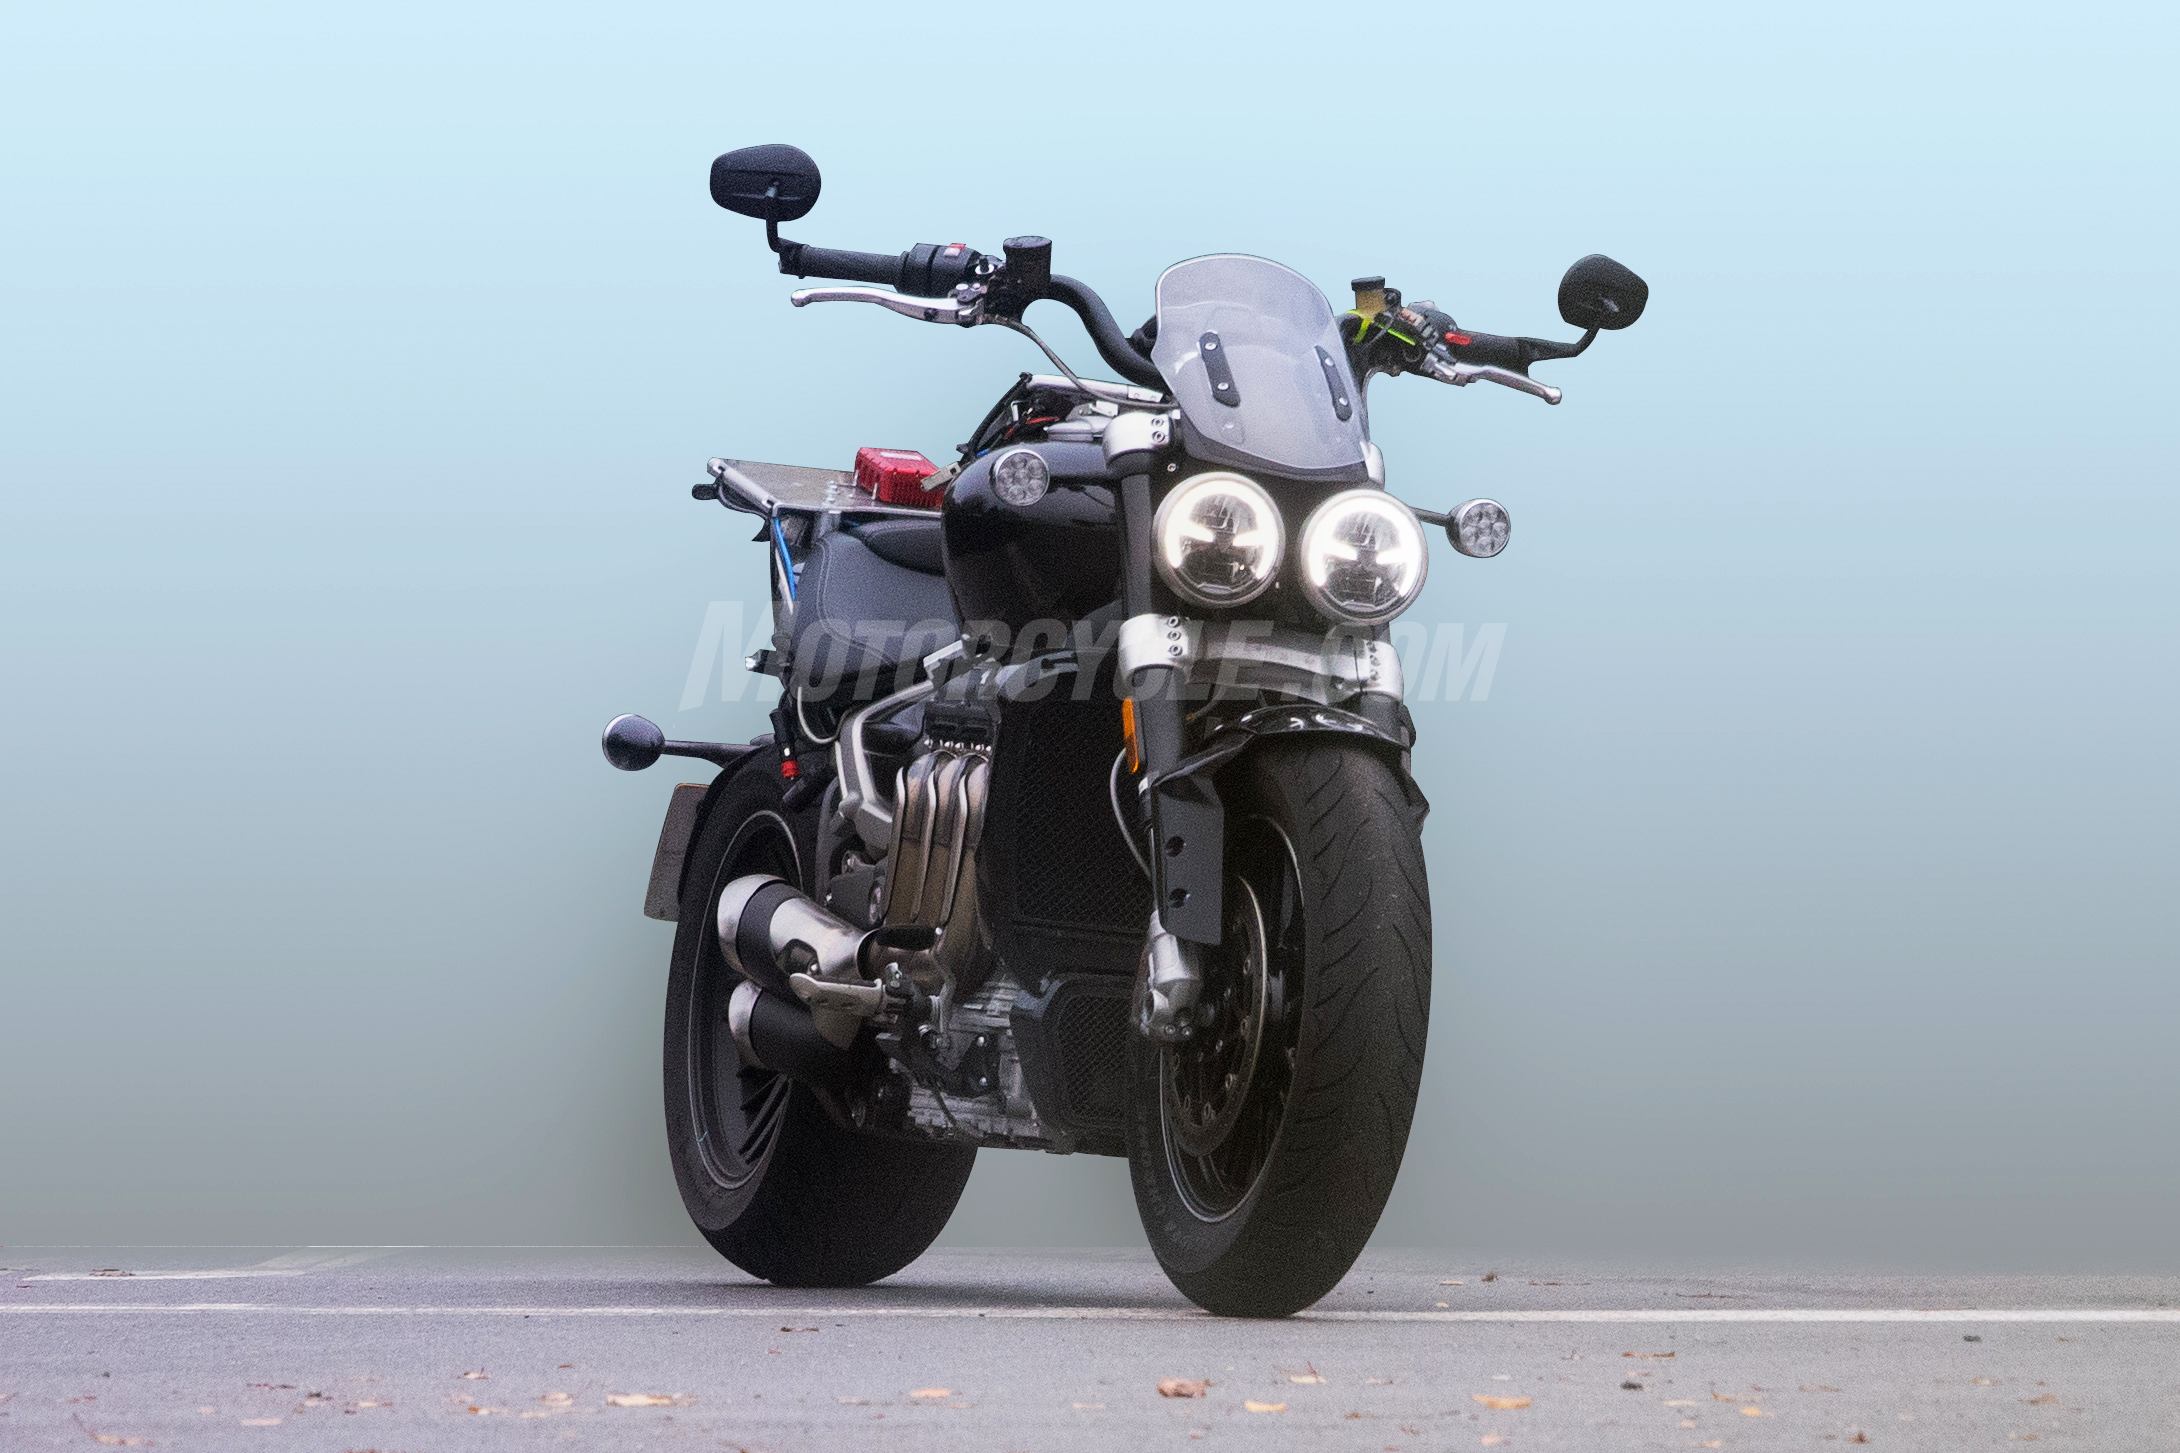 Spy Shots Reveal Triumphs 2020 Rocket Iii Webbikeworld